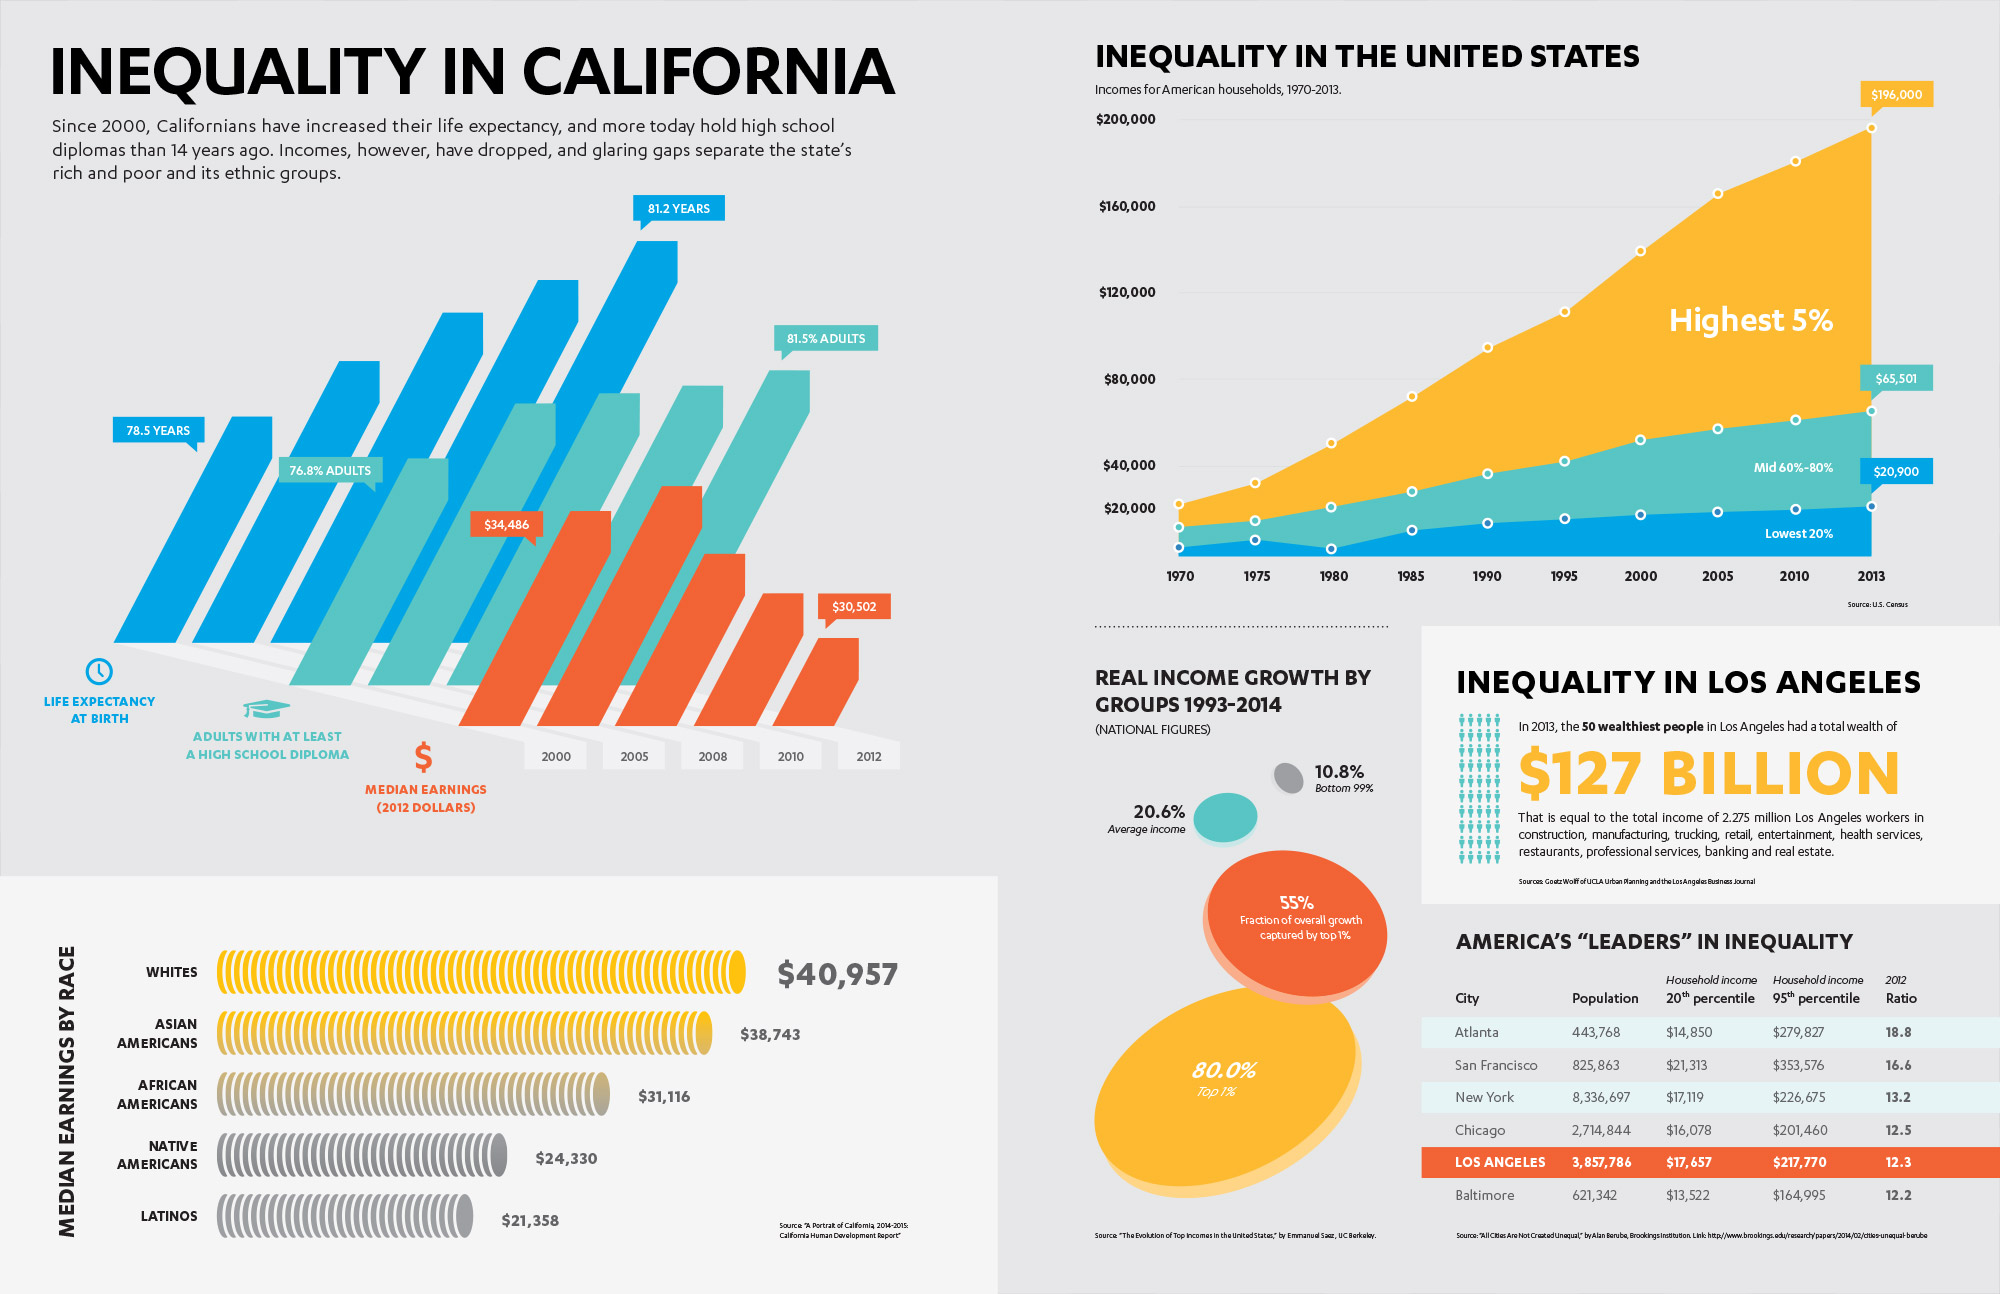 http://blueprint.ucla.edu/infographic/poverty-inequality-by-the-numbers/